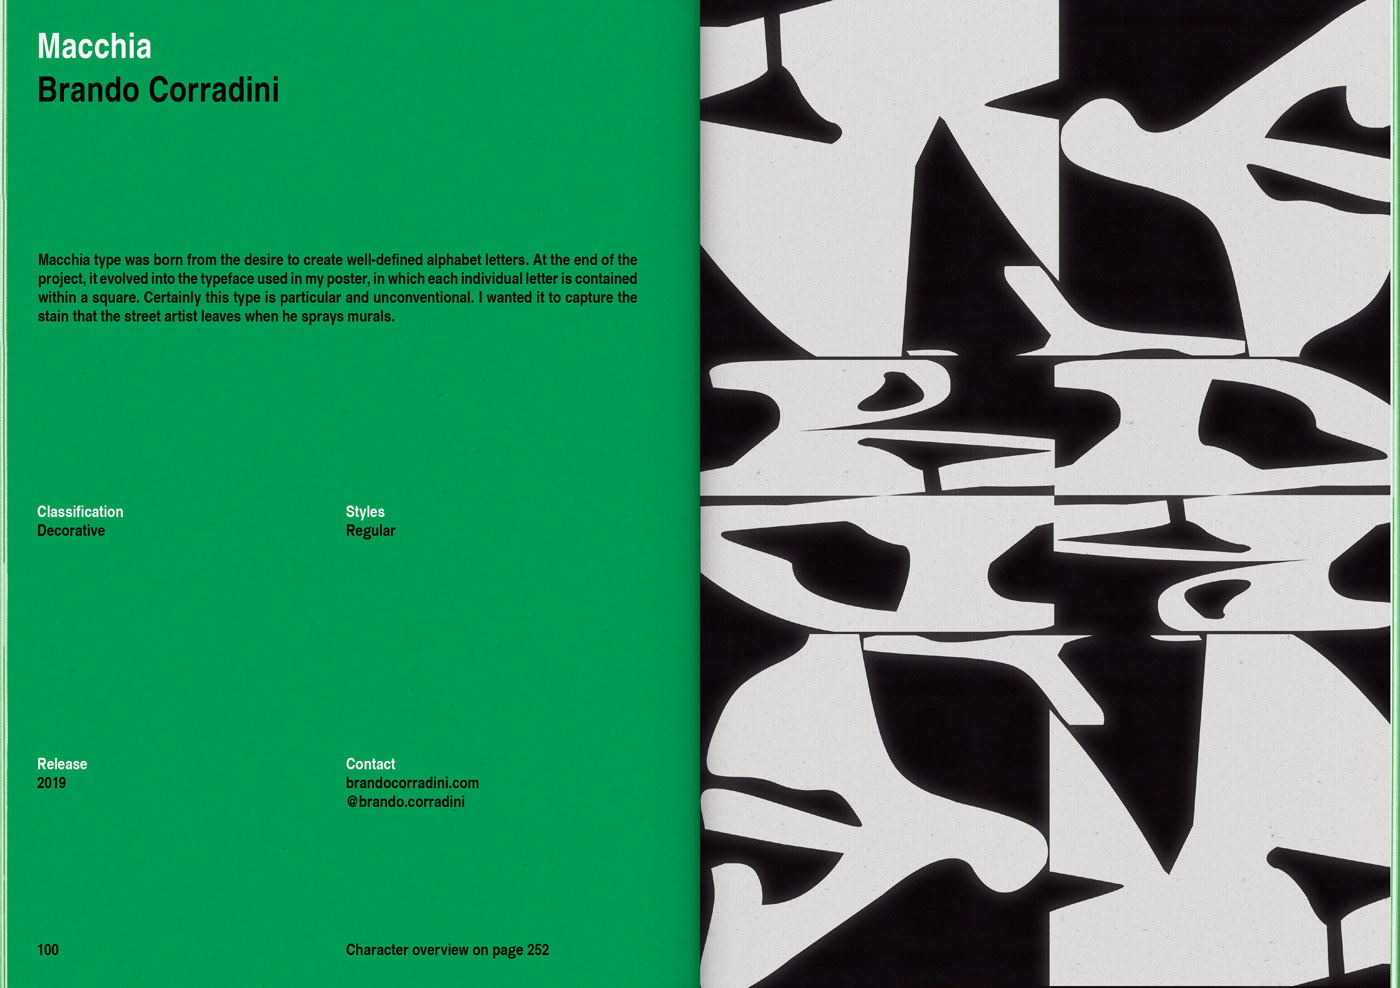 05 collide24 New Aesthetic 2 - Sophia Brinkgerd and Leonhard Laupichler celebrate the release of New Aesthetic 2, this time in collaboration with publishing house Sorry Press